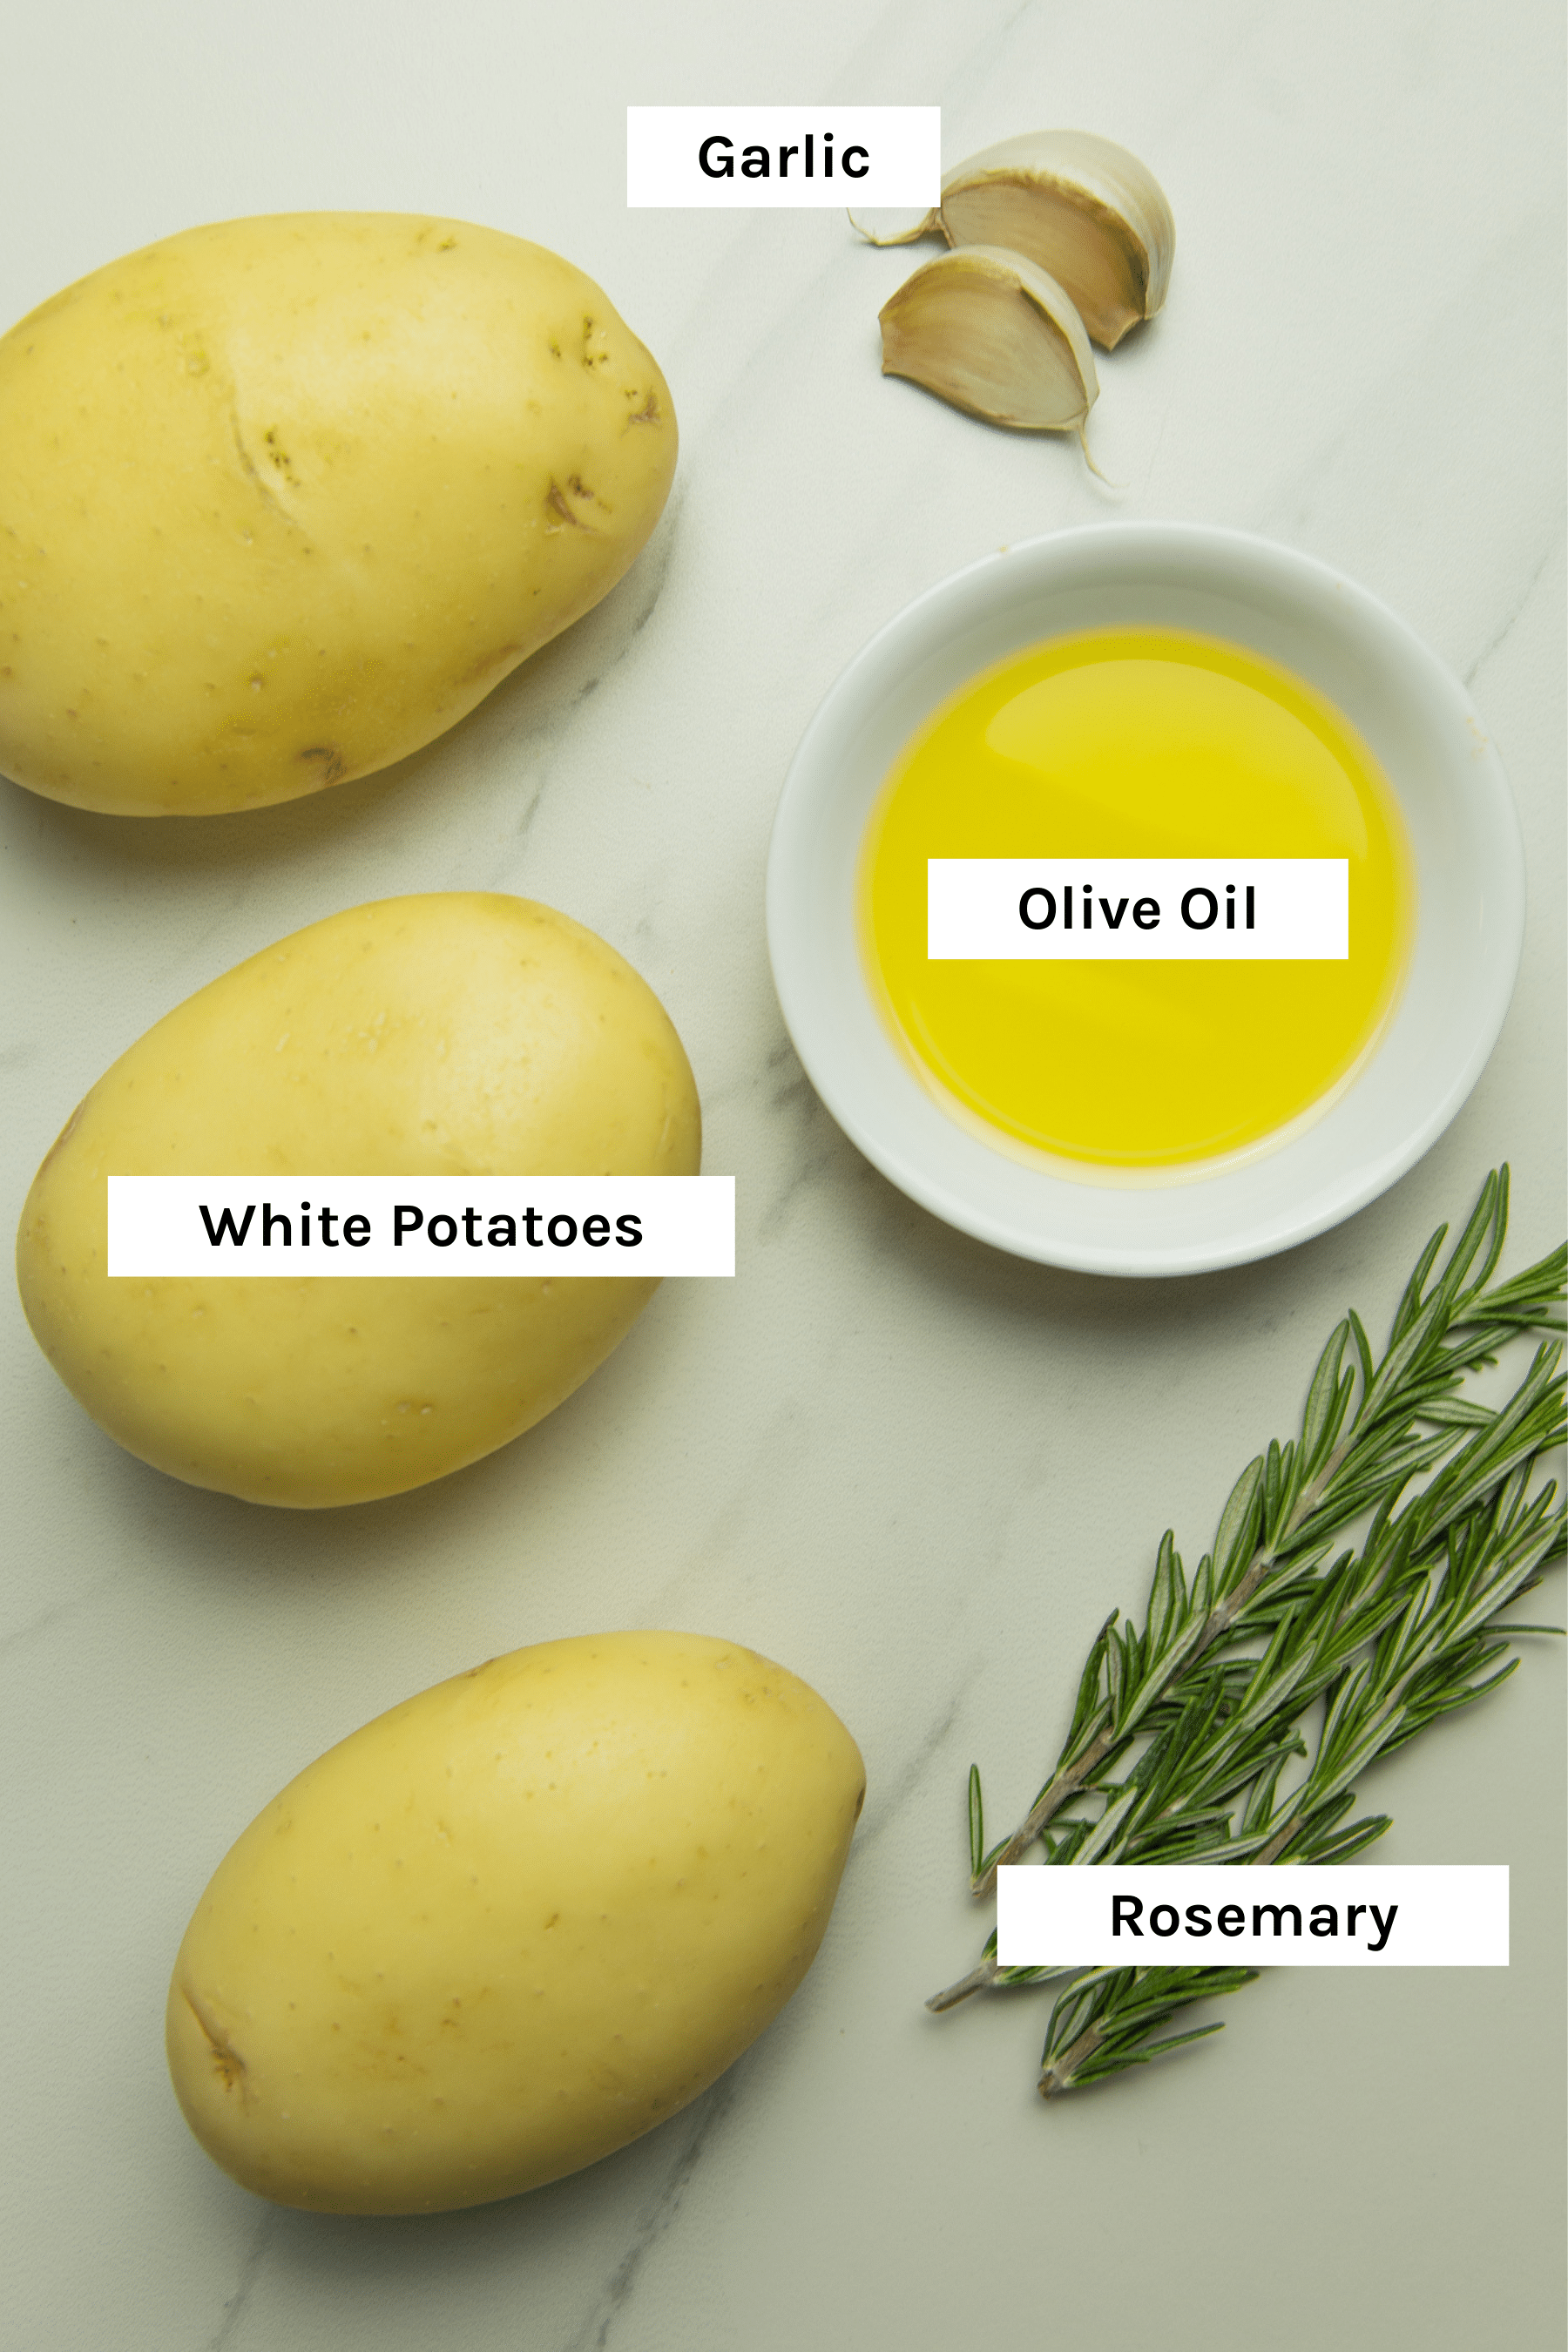 photo of the ingredients used to make these healthy oven baked fries - white potatoes, olive oil, garlic, rosemary and sea salt (which is missing from the image)